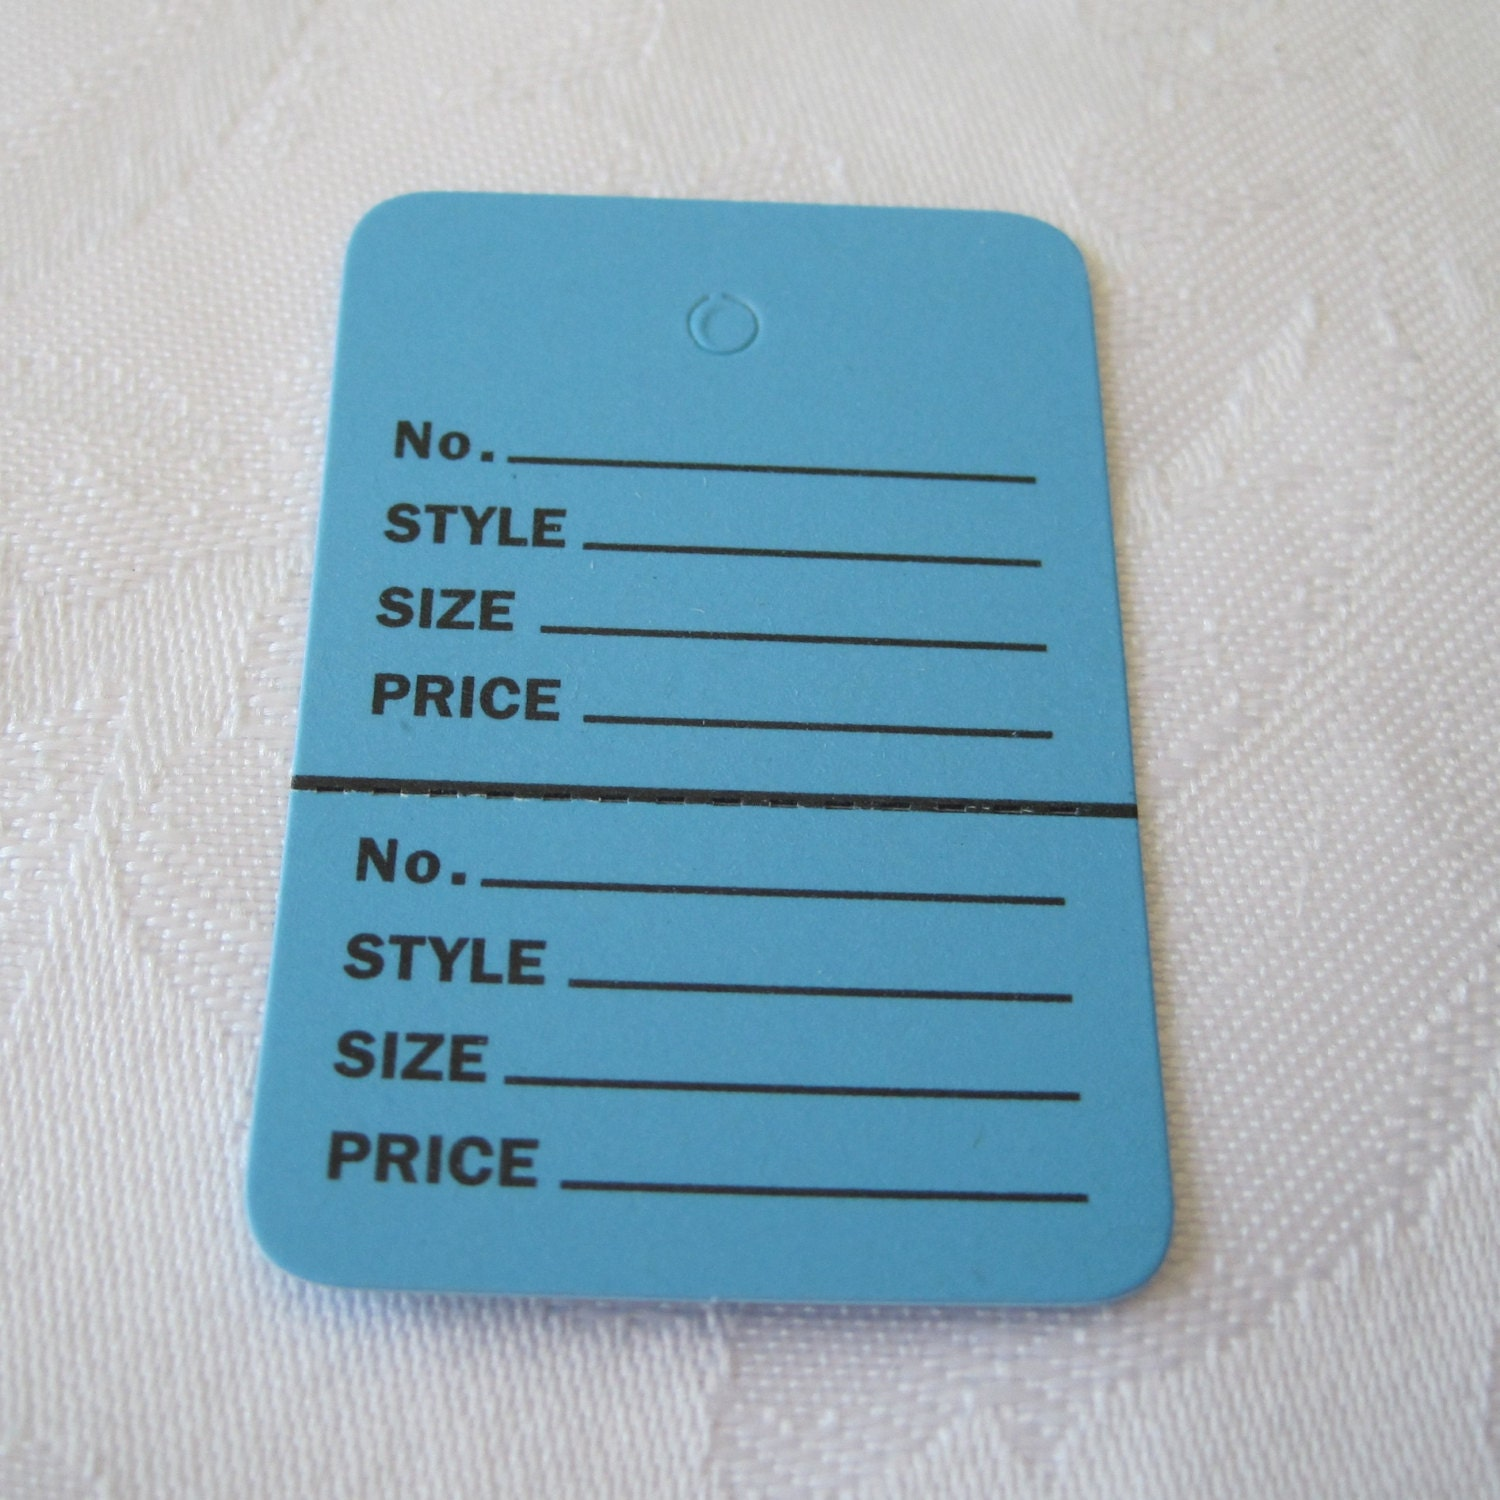 How to Attach Price Tags to Clothes | Bizfluent |Price Tags For Clothing